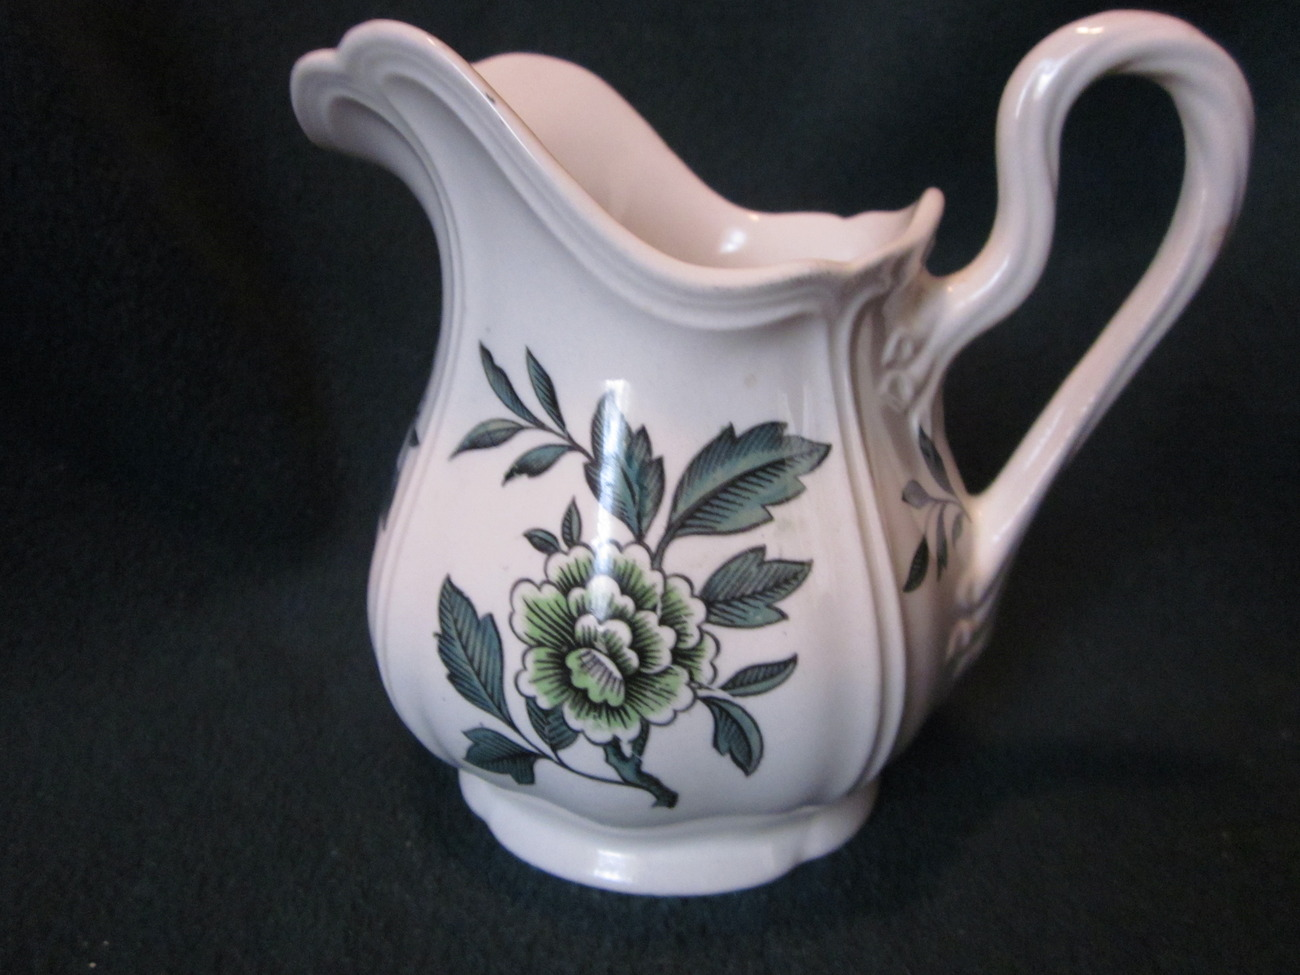 Wedgwood Green Leaf Barlastin Replacement Creamer 4.5 inches tall